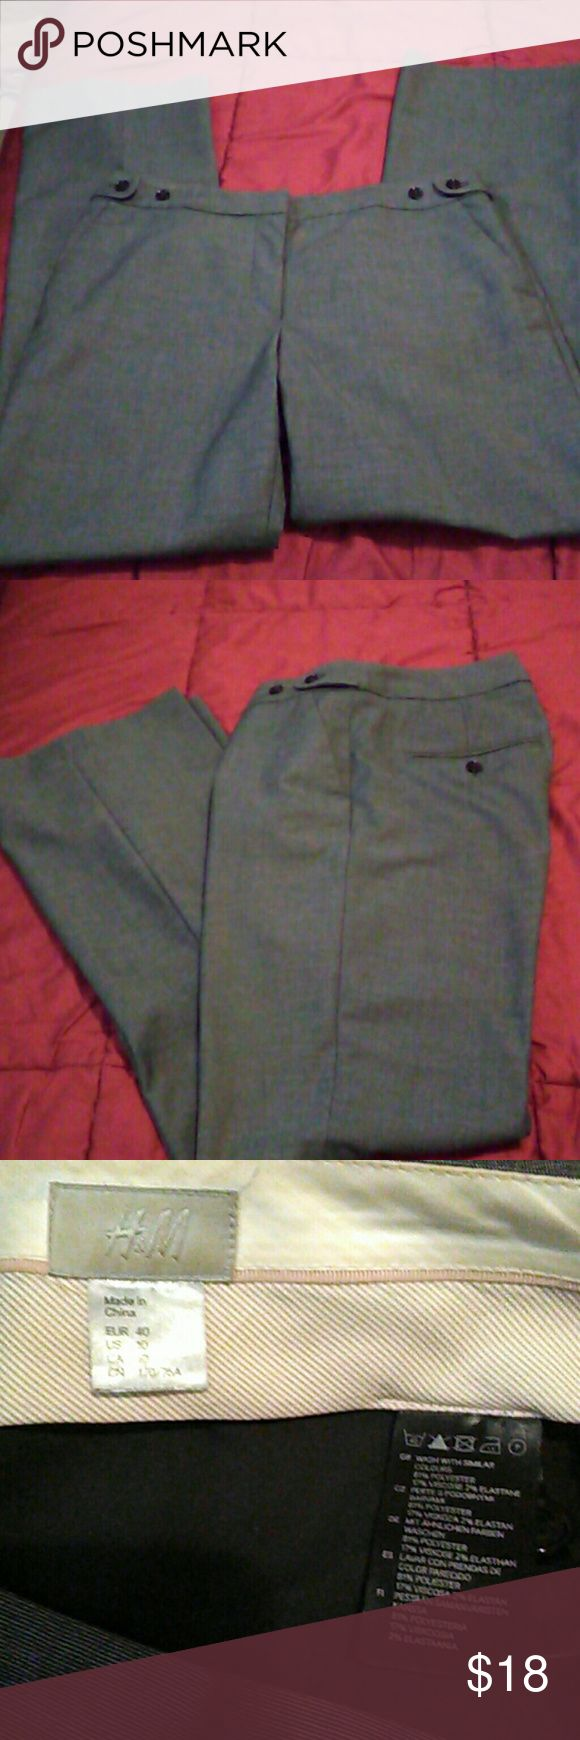 """NWOT/H&M/ Trousers Size 10/ Lovey light weight gray pants 81% polyester 17% rayon 2% spandex. Do not wrinkle easily. Comes with 3 extra buttons. Inseam 32"""" button adjustable waistband. Waist 36"""" can stretch to 37"""" H&M Pants Trousers"""